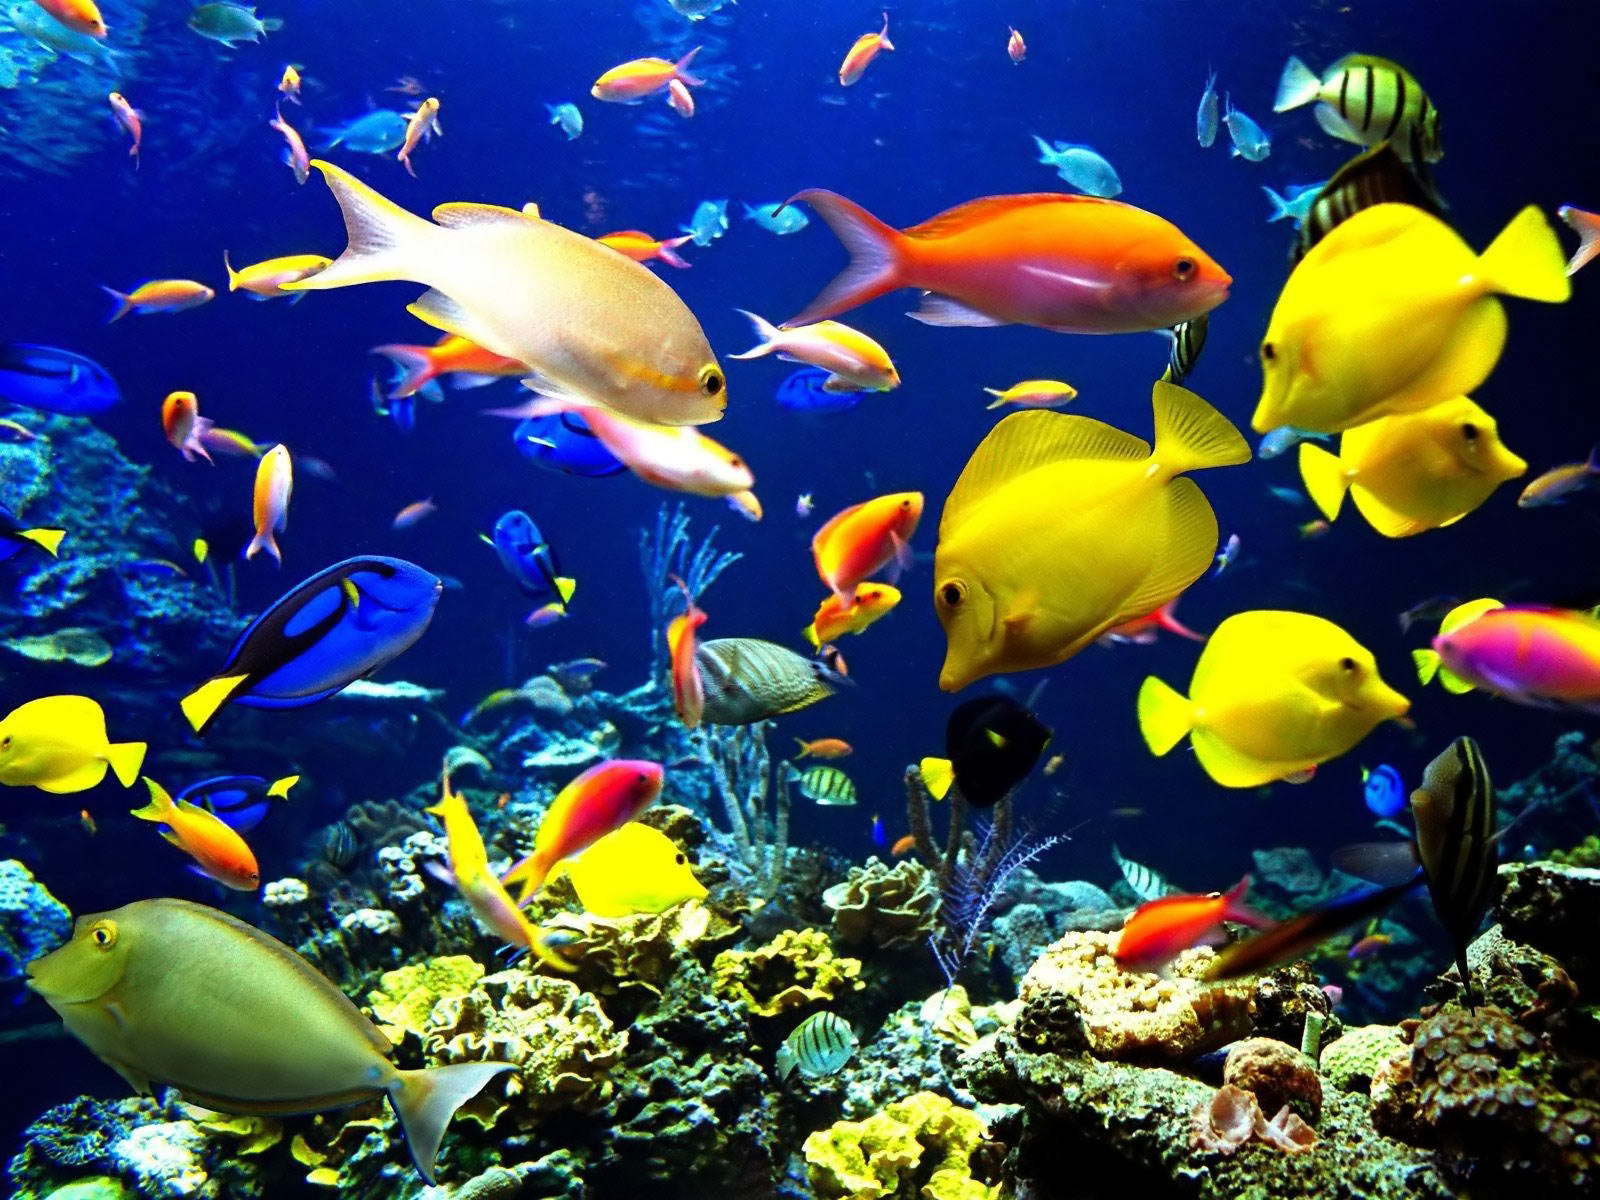 Category Animal Coral Reef Life Fish HD Wallpaper 137